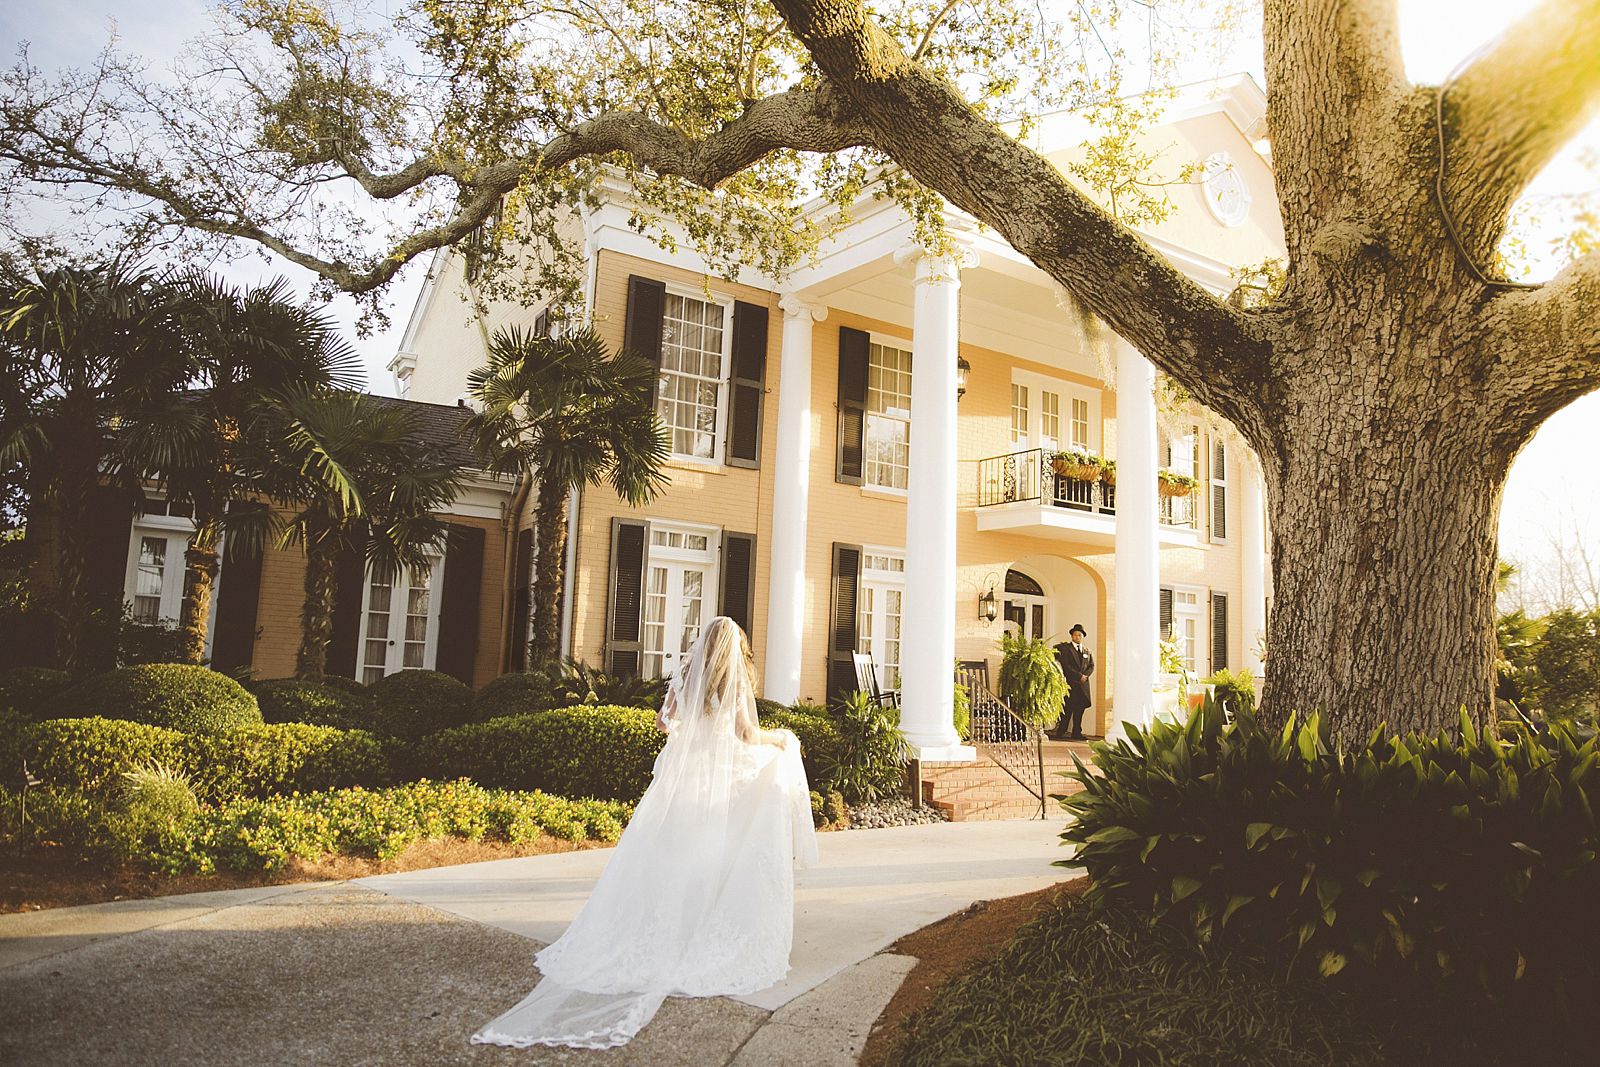 Wedding at the Southern Oaks Plantation in New Orleans. Close to the French Quarter.